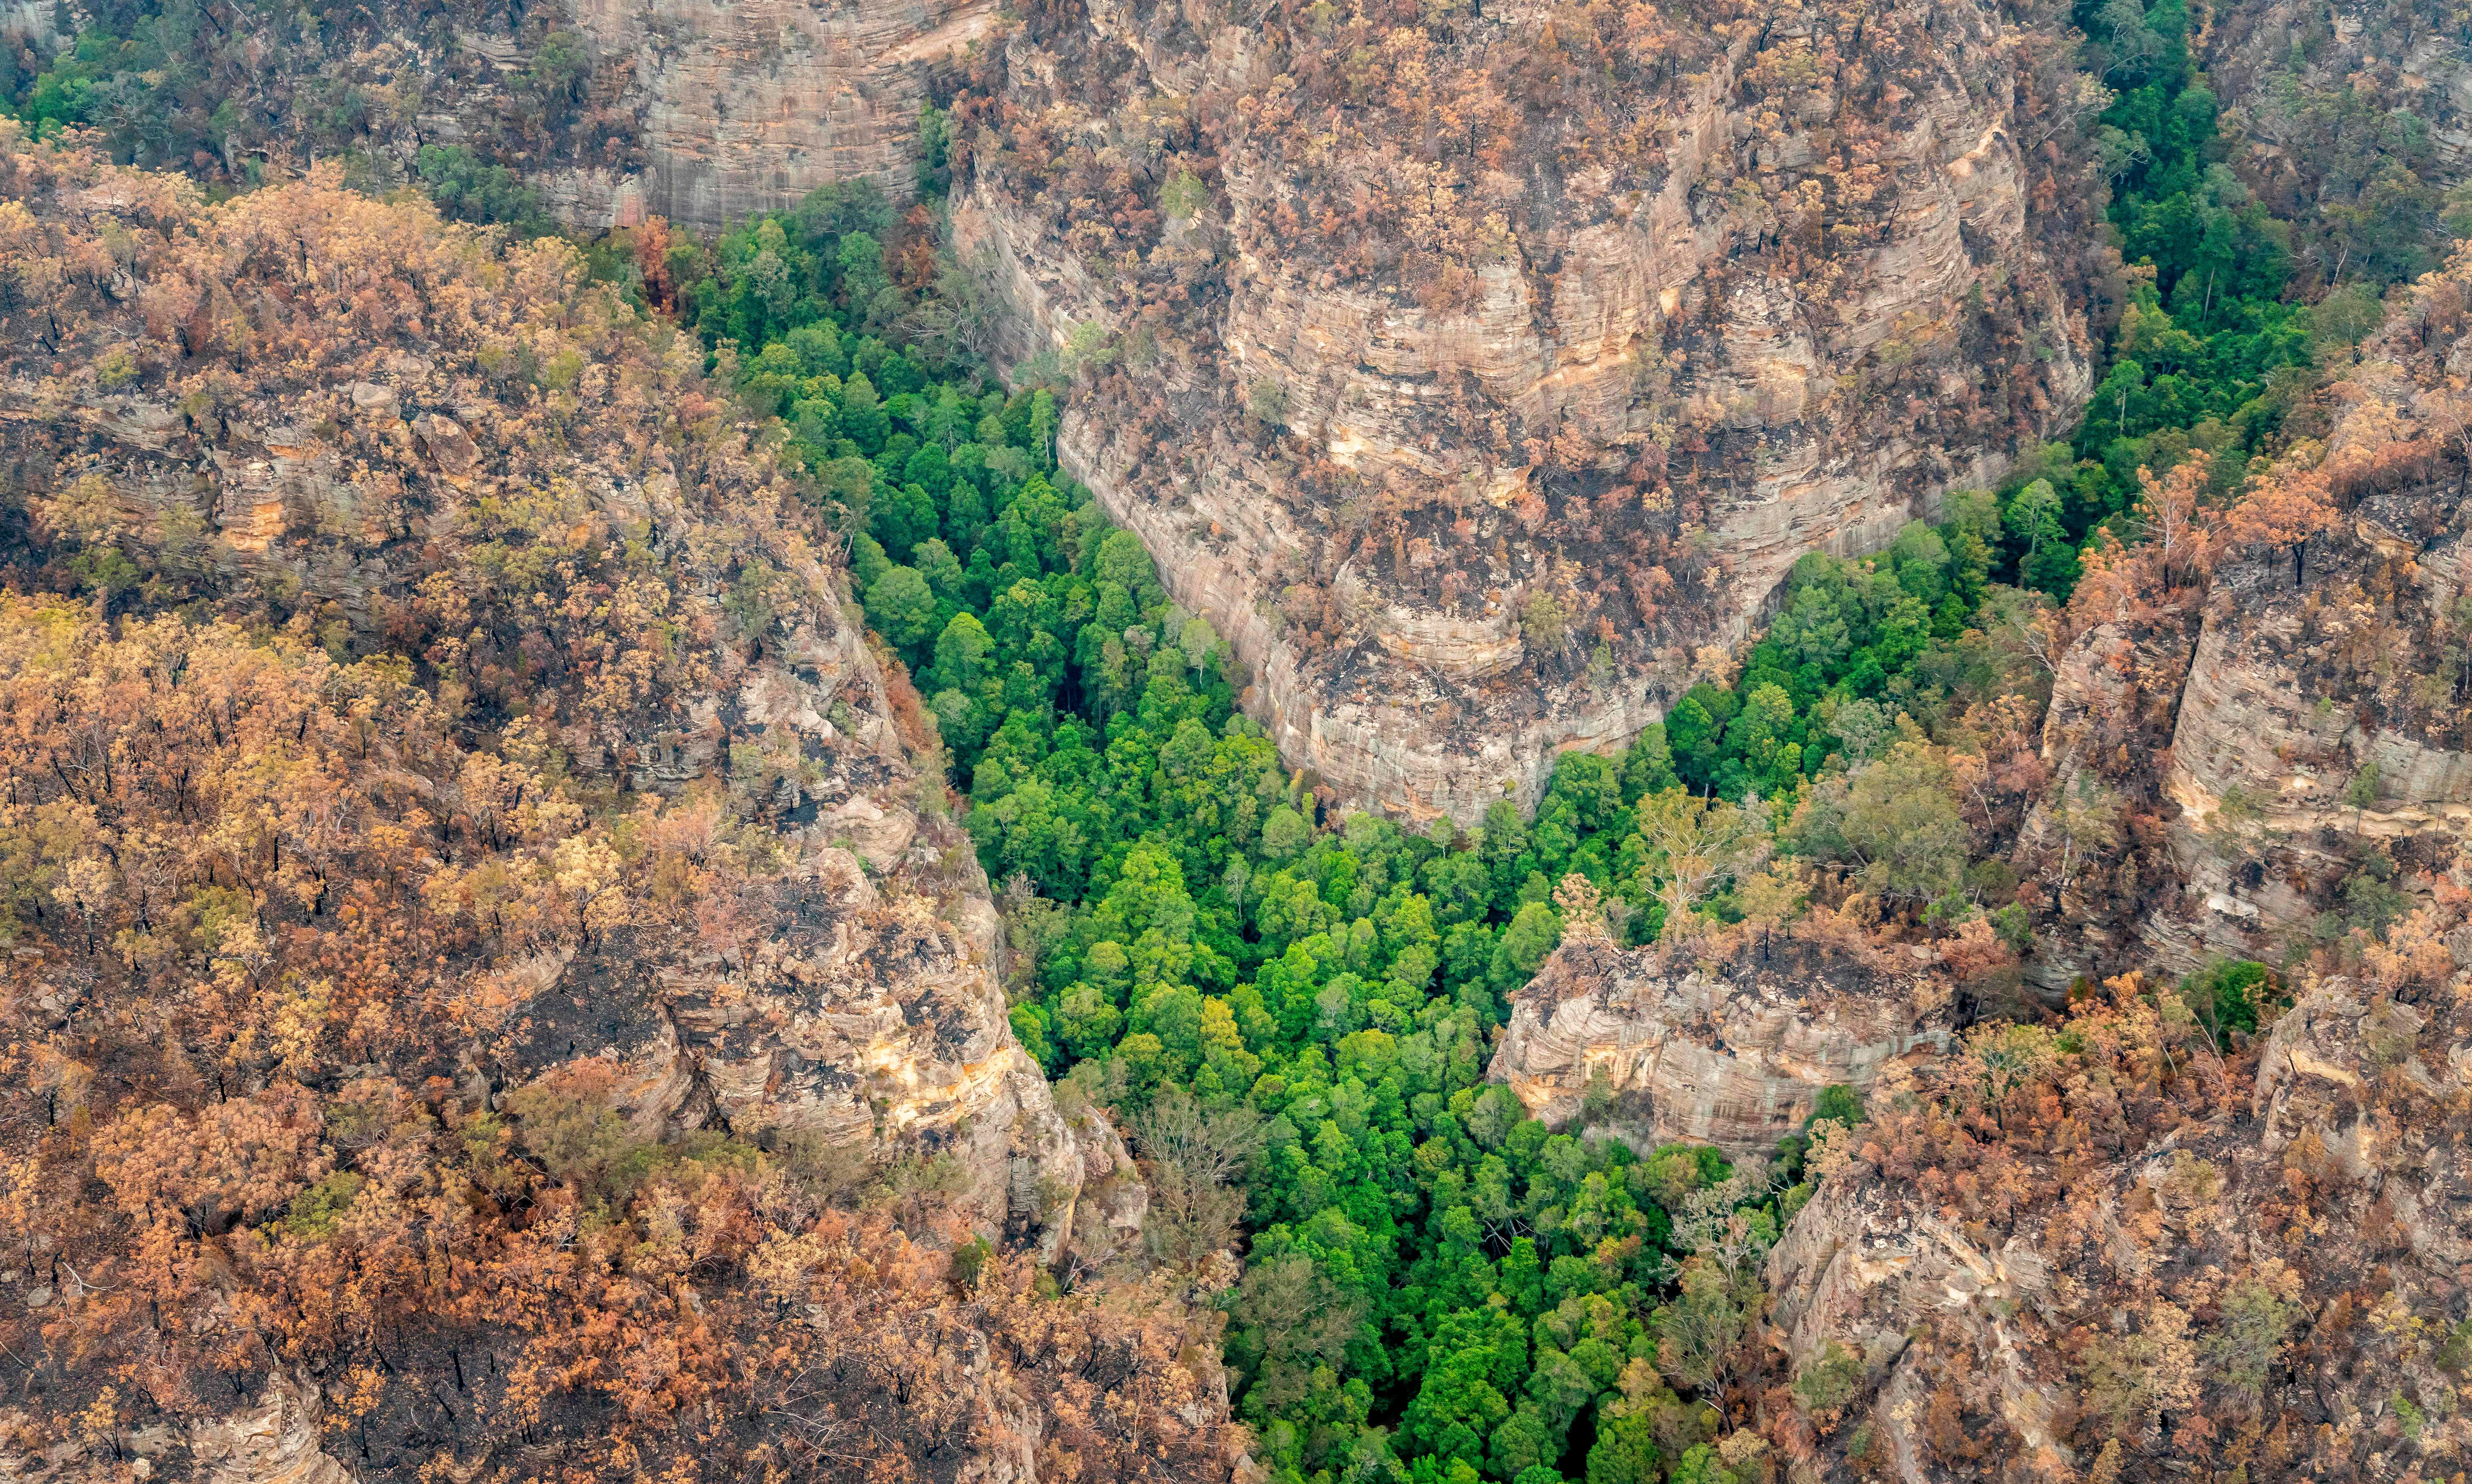 'Dinosaur trees': firefighters save endangered Wollemi pines from NSW bushfires